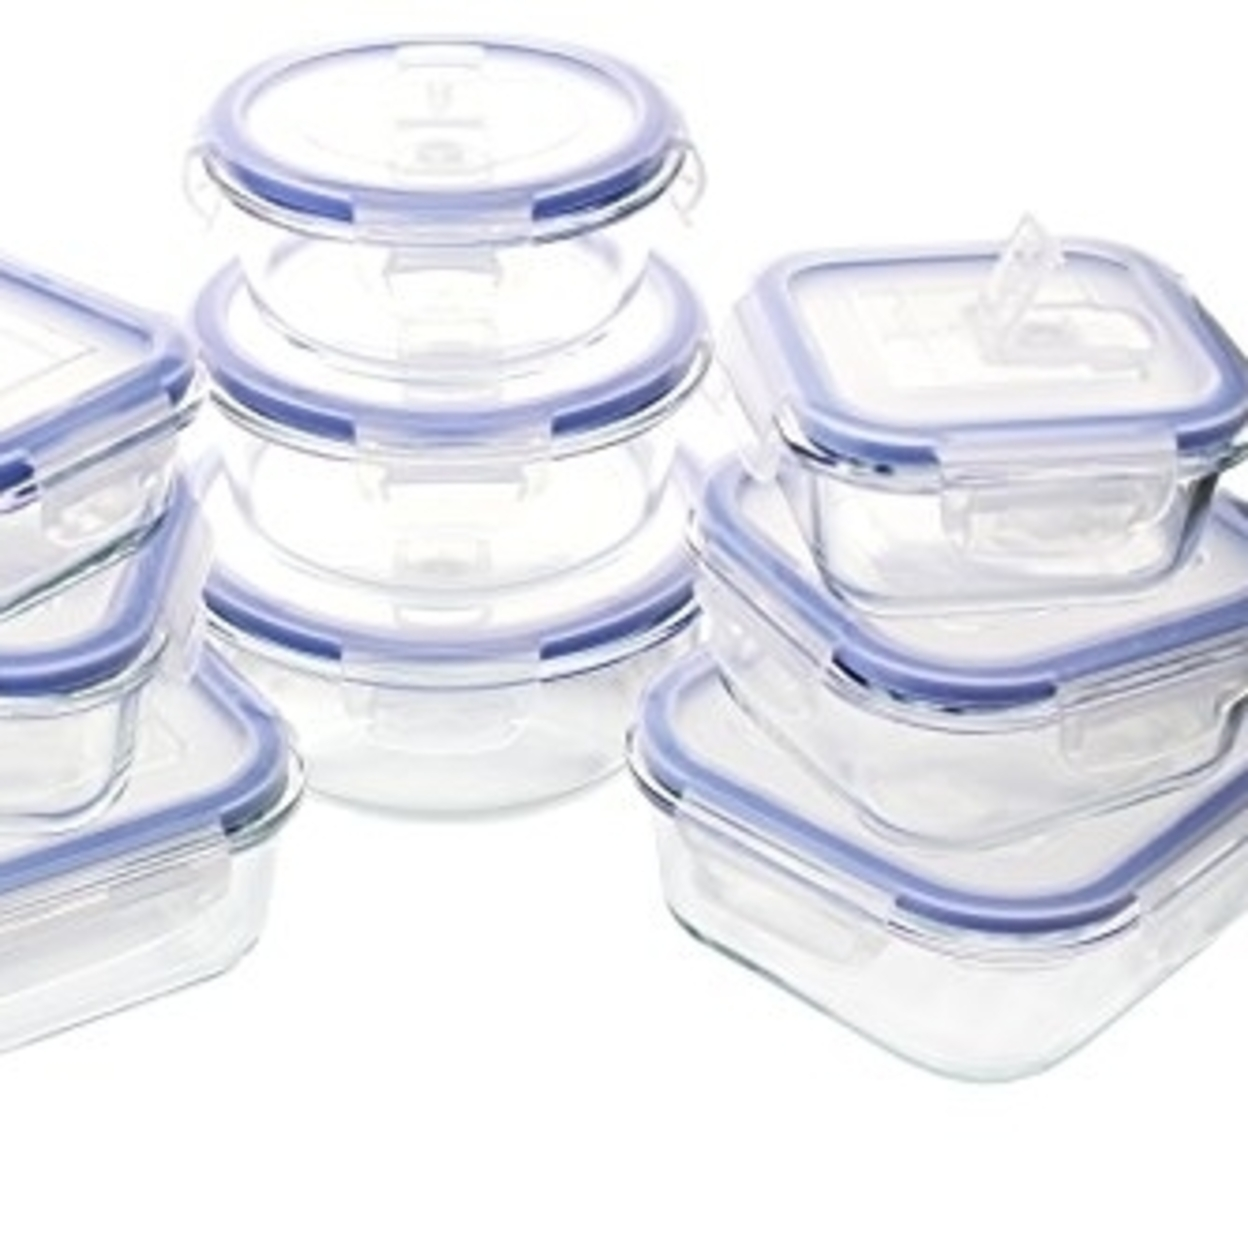 Kinetic 55047 Glasslock Oven Safe Glass Food Storage Container Set With Vented Lid 596d3a592a00e43e3356726b